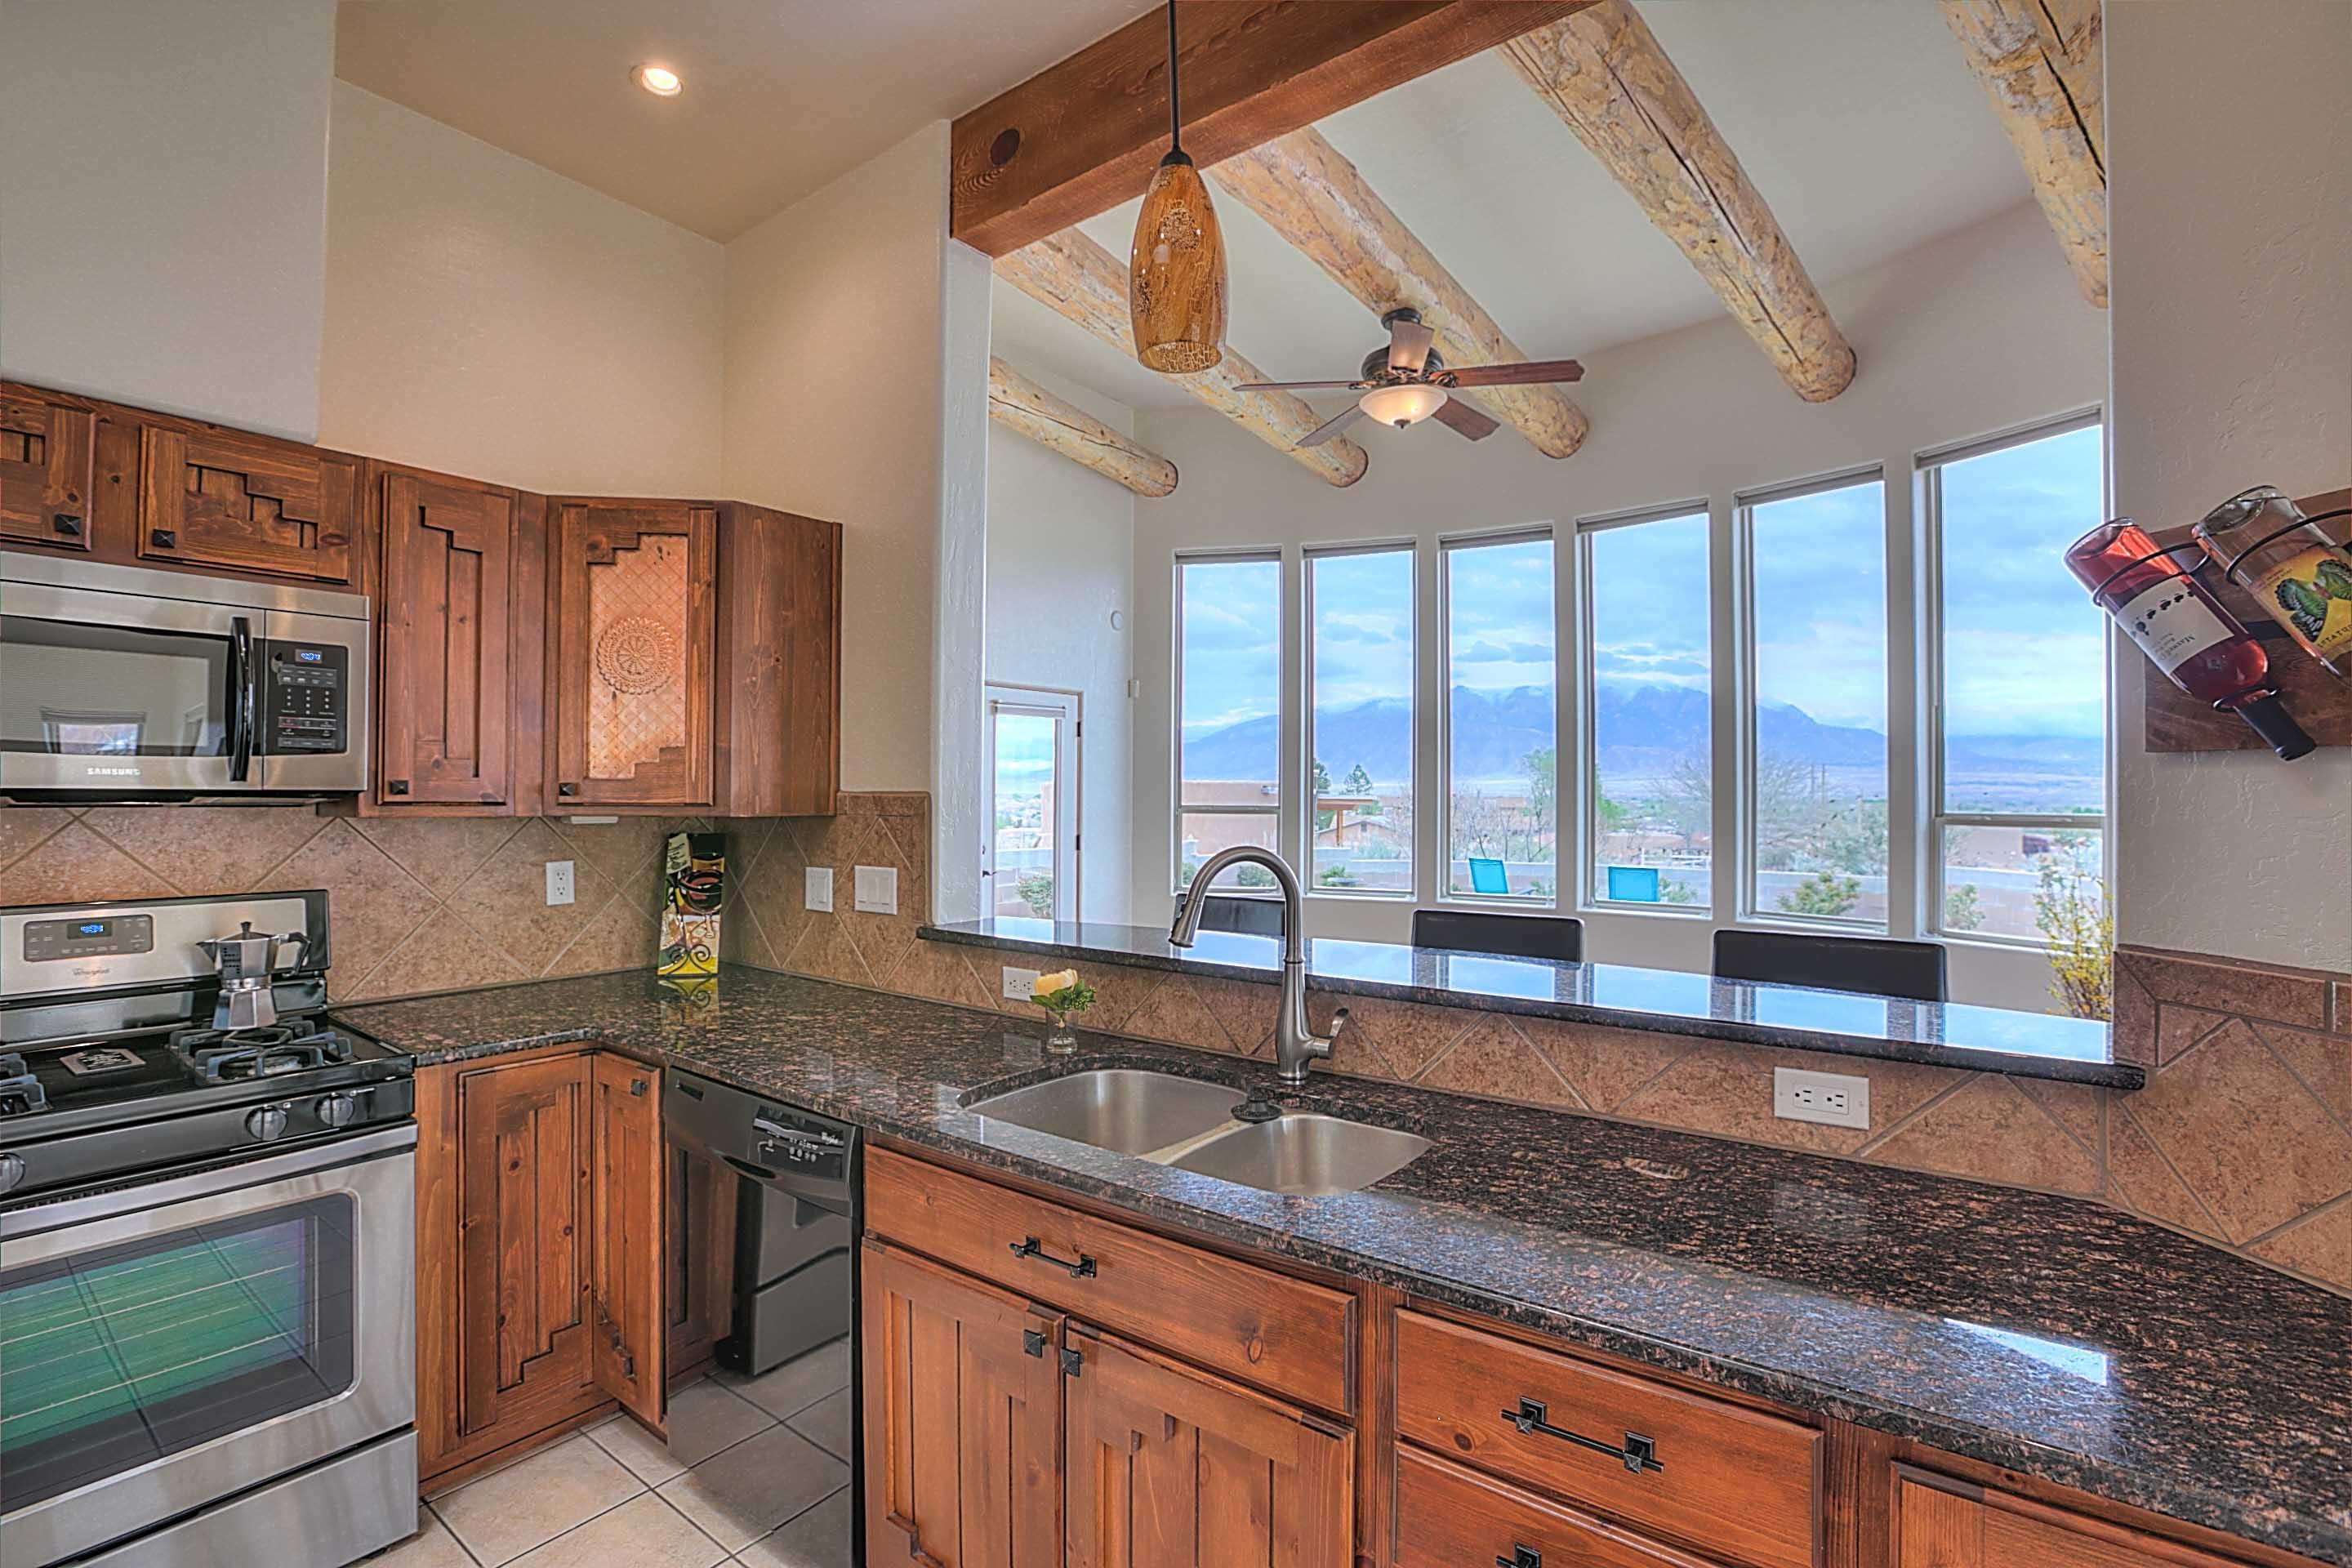 AWARD WINNING Custom home! Situated on over an acre!*ELEVATED MILLION DOLLAR VIEWS*PRIVACY* Large island kitchen with upgraded stainless appliances and gleaming granite counters. Custom cabinets w/copper inserts, overlooking the great room featuring: a sweeping wall of curved windows, scraped wood floor, raised ceiling, suspended shaved vigas & hand plastered fireplace. The master retreat has a hand carved beamed ceiling & private view patio. *REJUVENATE in the SPA Inspired spacious master bath featuring custom tile, a dual headed shower and large tub. HUGE walk-in closet. Newer refrigerated air and furnace. Fully landscaped with grass, trees, roses & wisteria. MANY CUSTOM EXTRAS! Circular entry skylight, intricate entry medallion, stacked stone accents. *PRIVATE PAVED ROAD* *A WOW HOUSE*